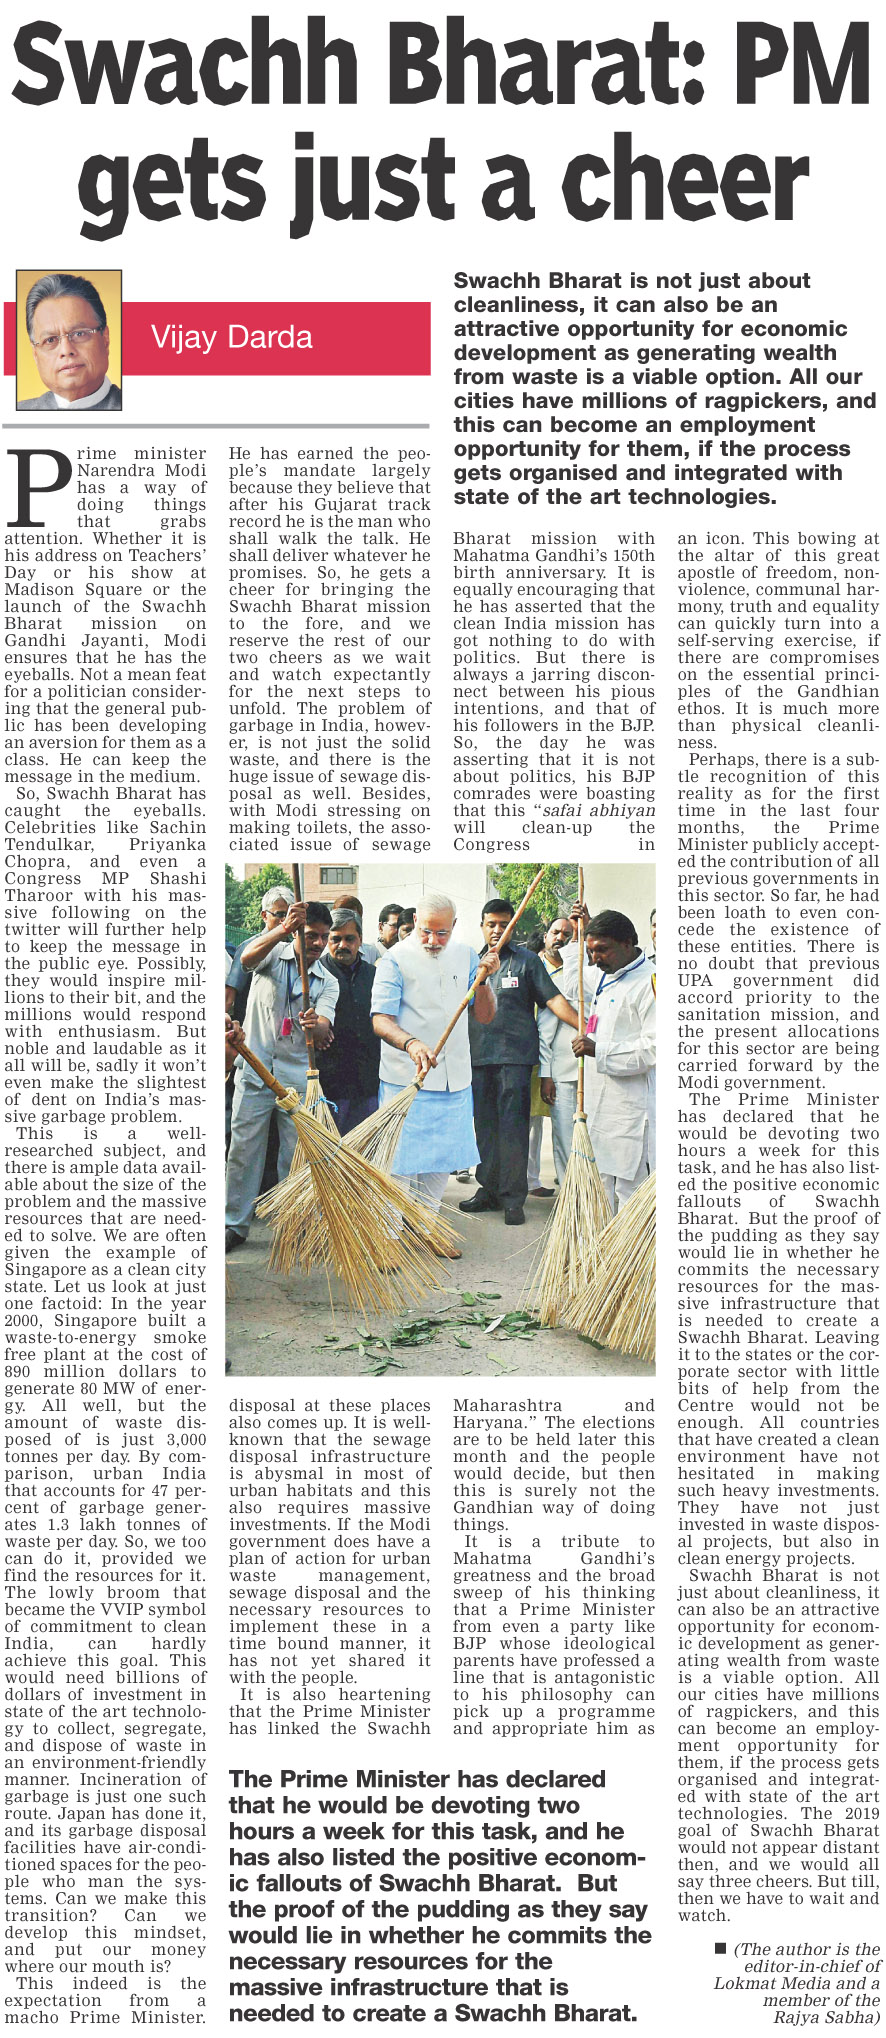 Swachh Bharat: PM gets just a cheer